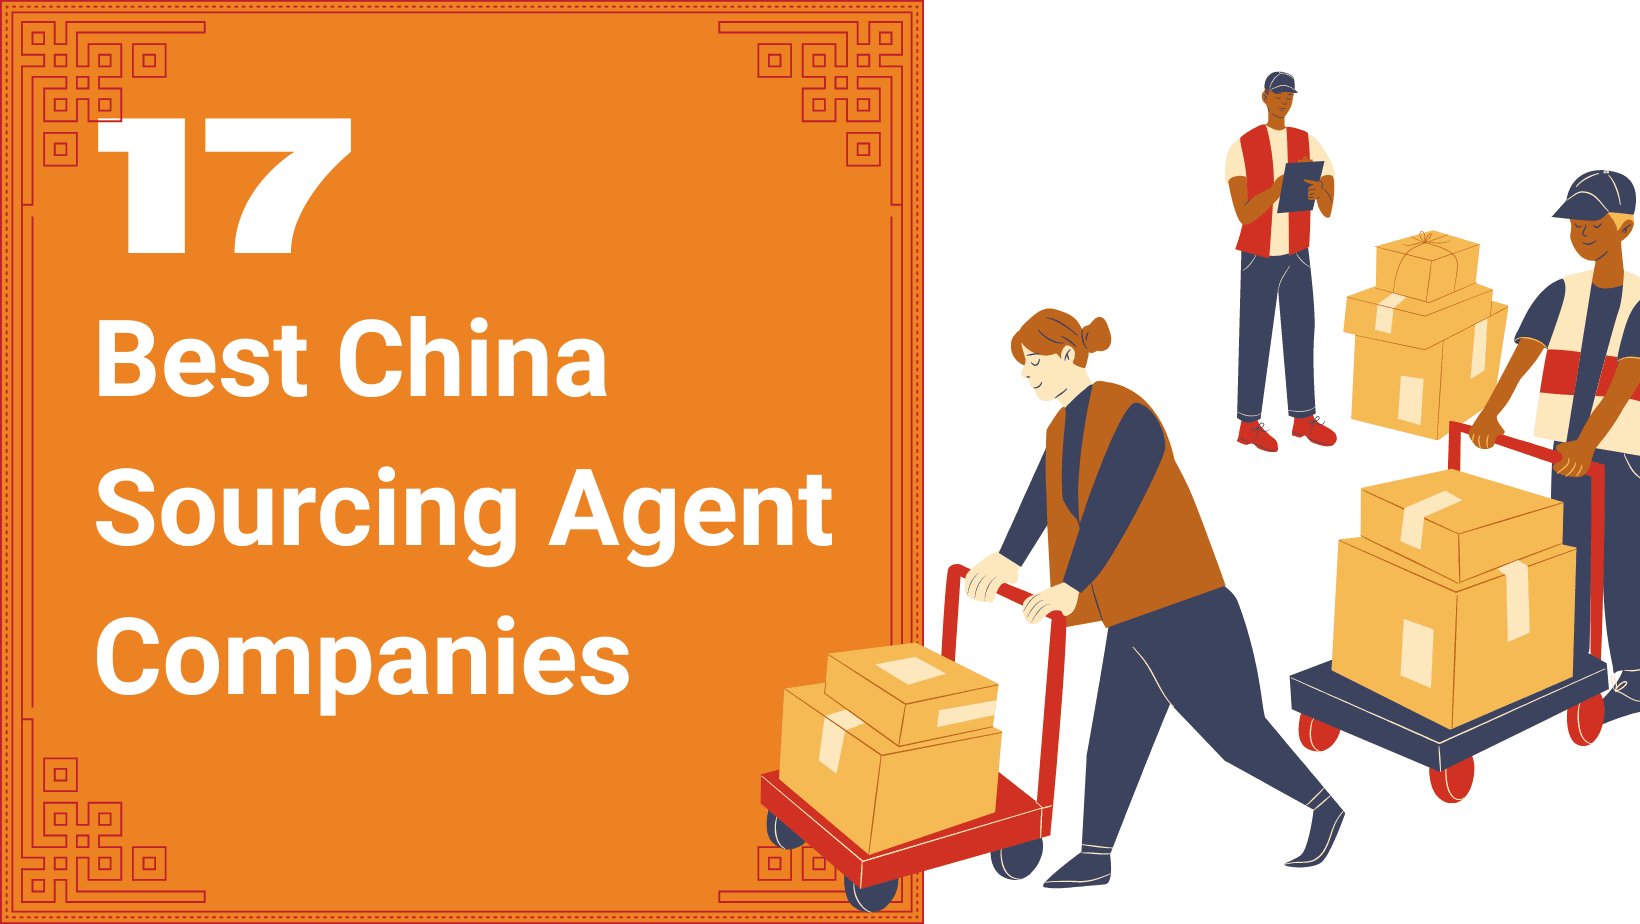 17 Best China Sourcing Agent Companies